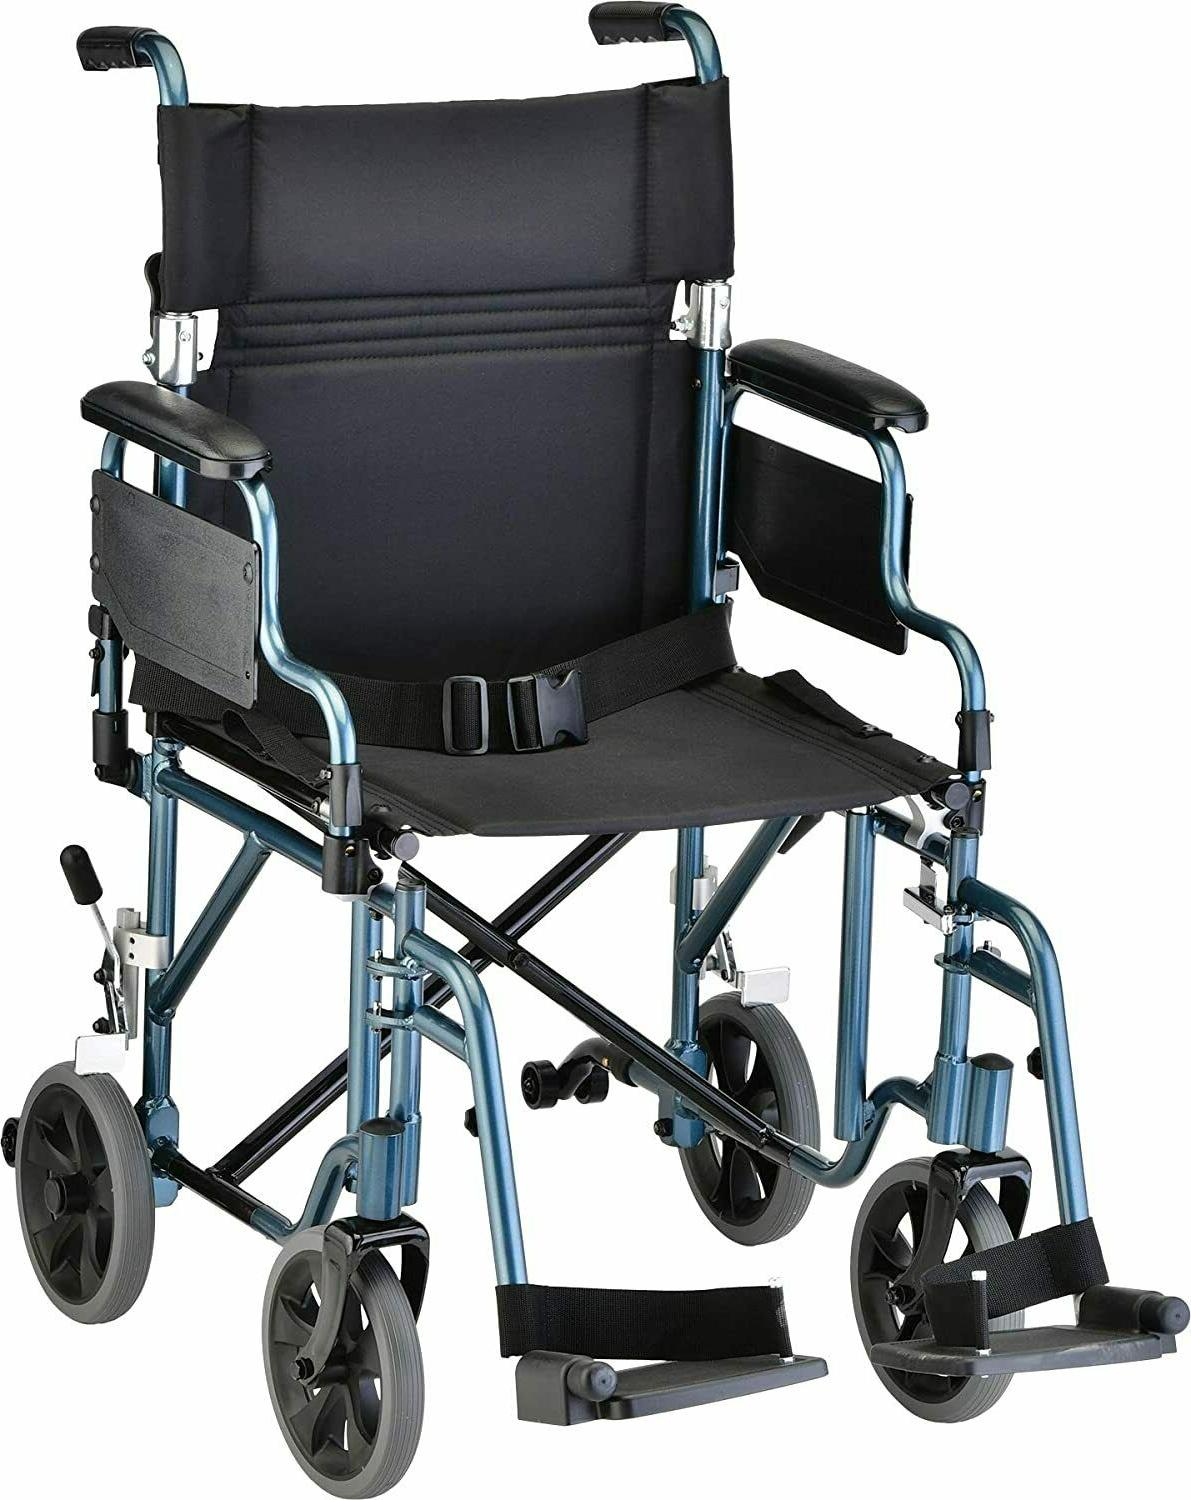 Transport/Wheelchair with